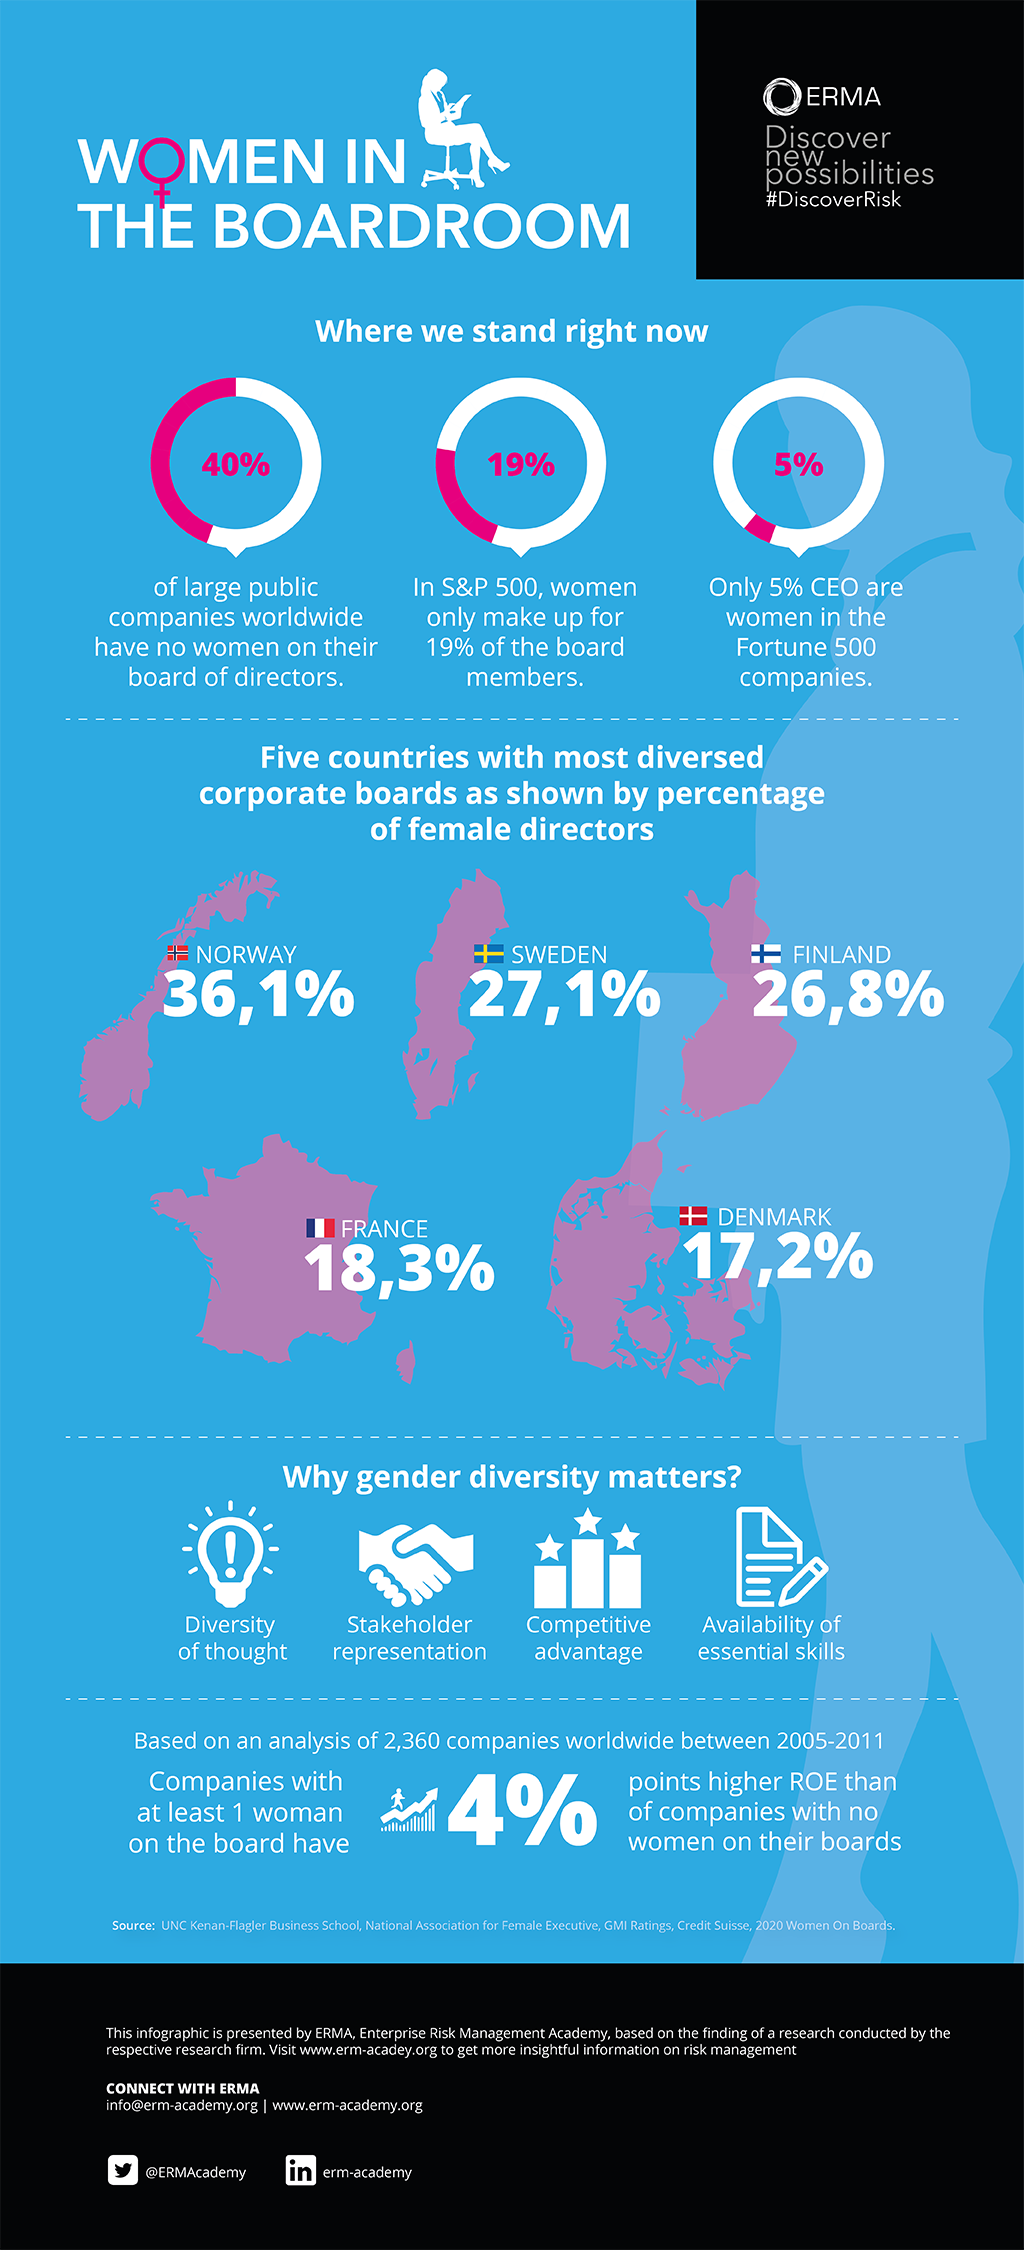 Do you know that gender inequality actually exist in the workplace?  40% of large companies worldwide have no women on their board of directors. Furthermore, in S&P 500, women only make up for 19% of the board members! Why should we care about this? This ERMA infographic contains some useful benefits of having more gender diversity in the boardroom.  #infographic #business #DiscoverRisk #gender #boardroom